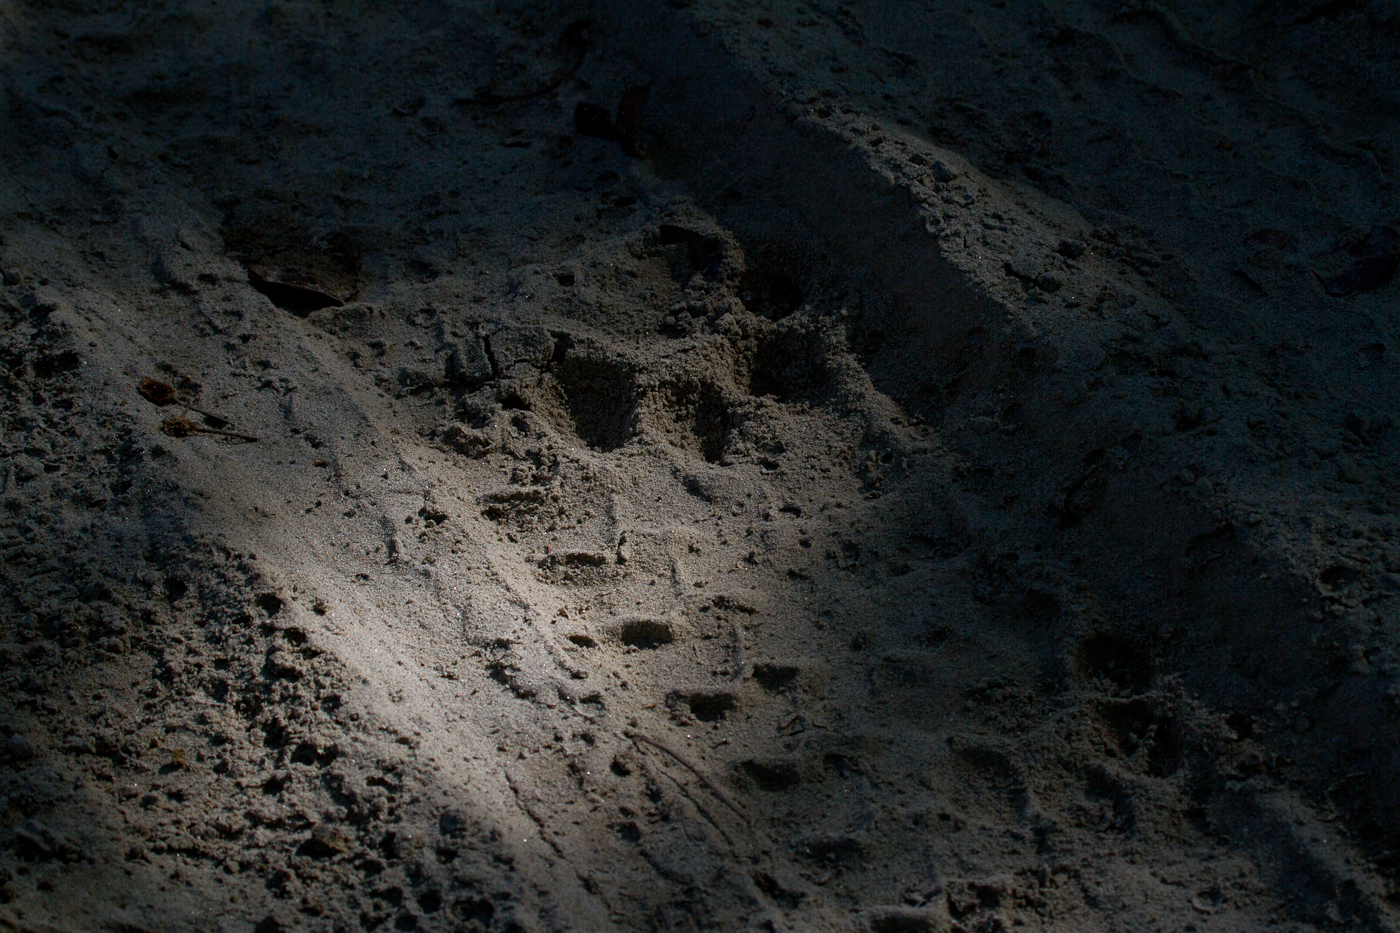 Tiger tracks in Bardia National Park